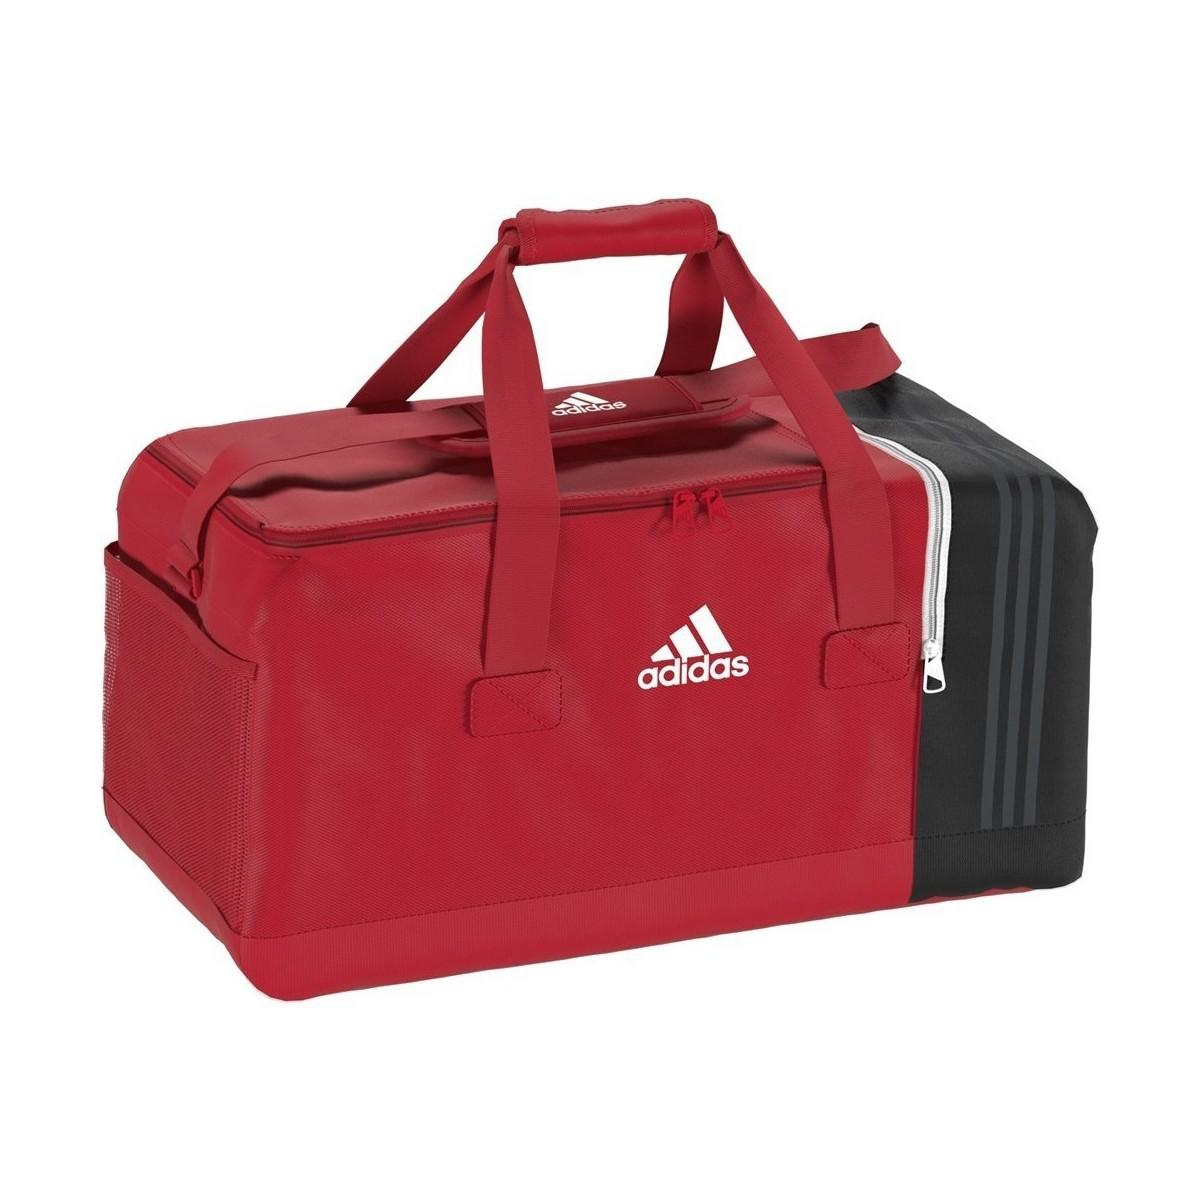 Adidas Tiro Teambag Large Men s Bag In Black in Black for Men - Lyst 1f04ddf28d2d9